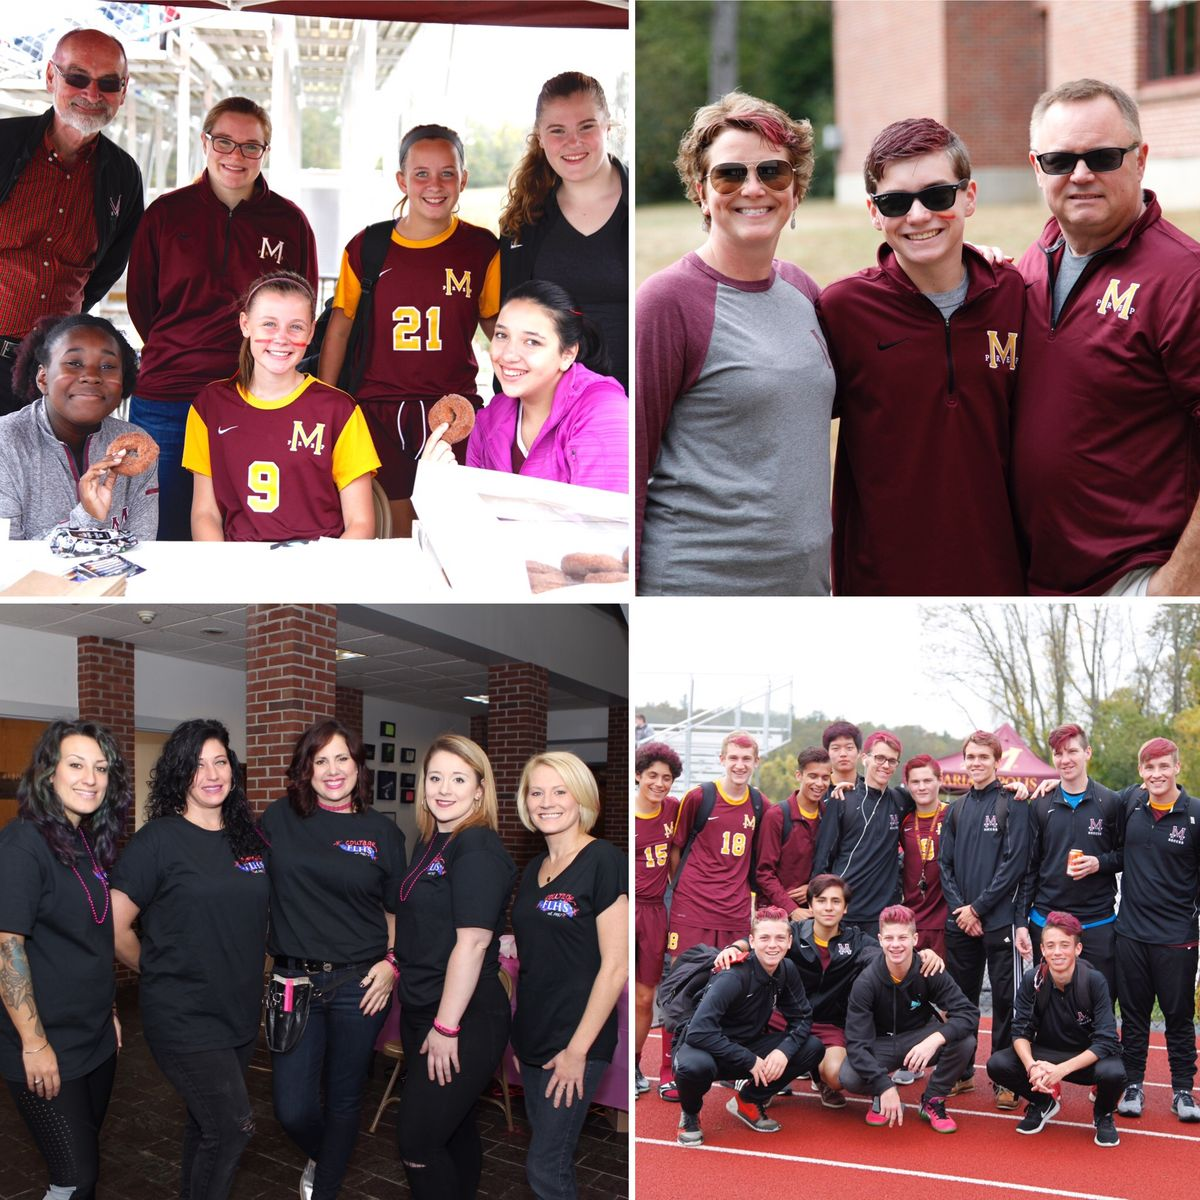 Marianapolis Celebrates Parent & Family Weekend